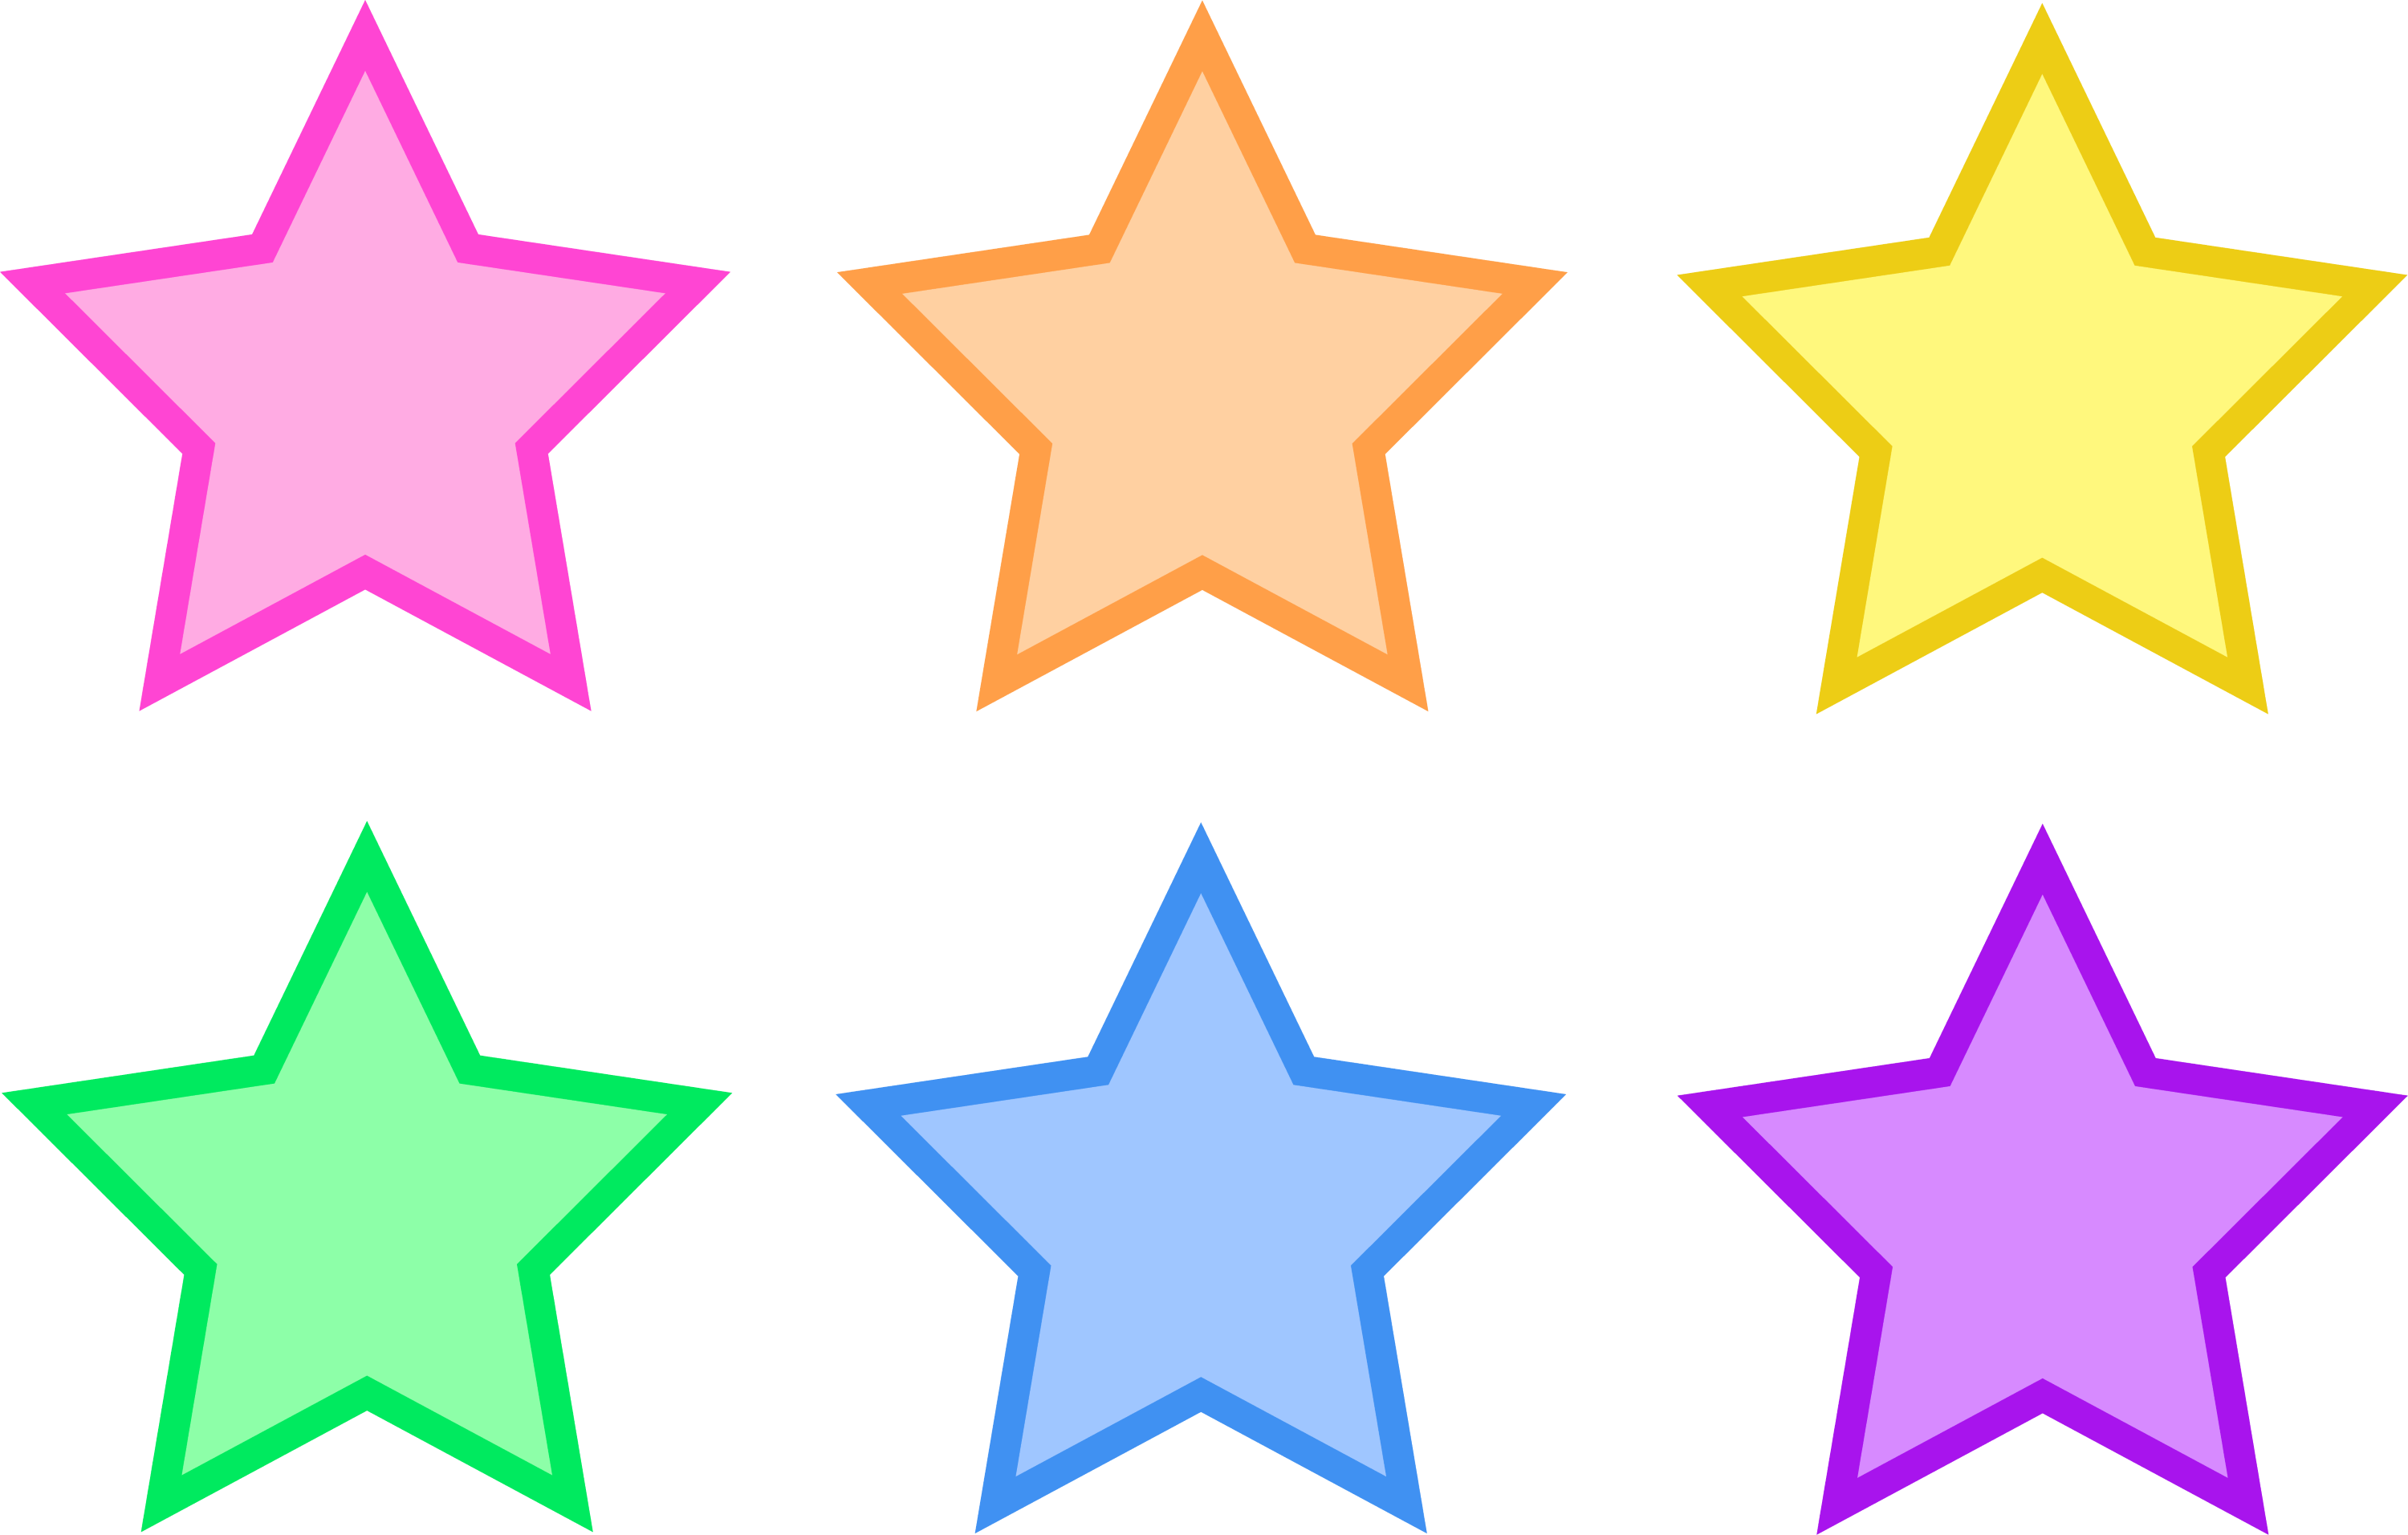 Cute pastel colored stars